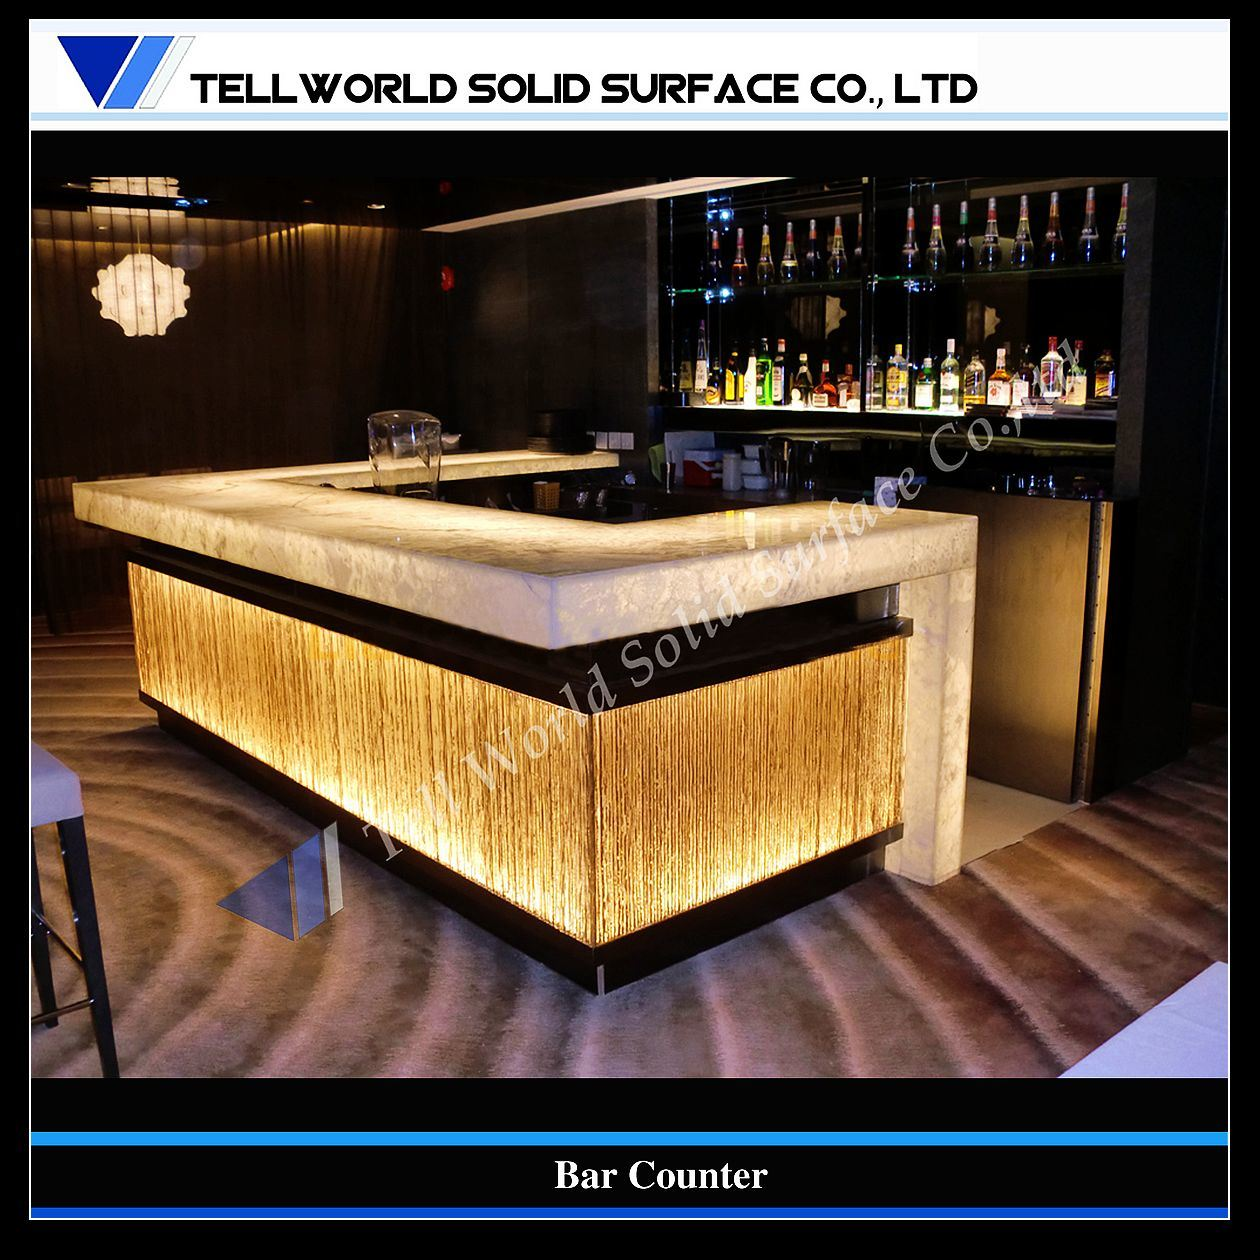 China artificial stone solid surface bar counter supplier tell world solid surface co ltd Free commercial bar design plans